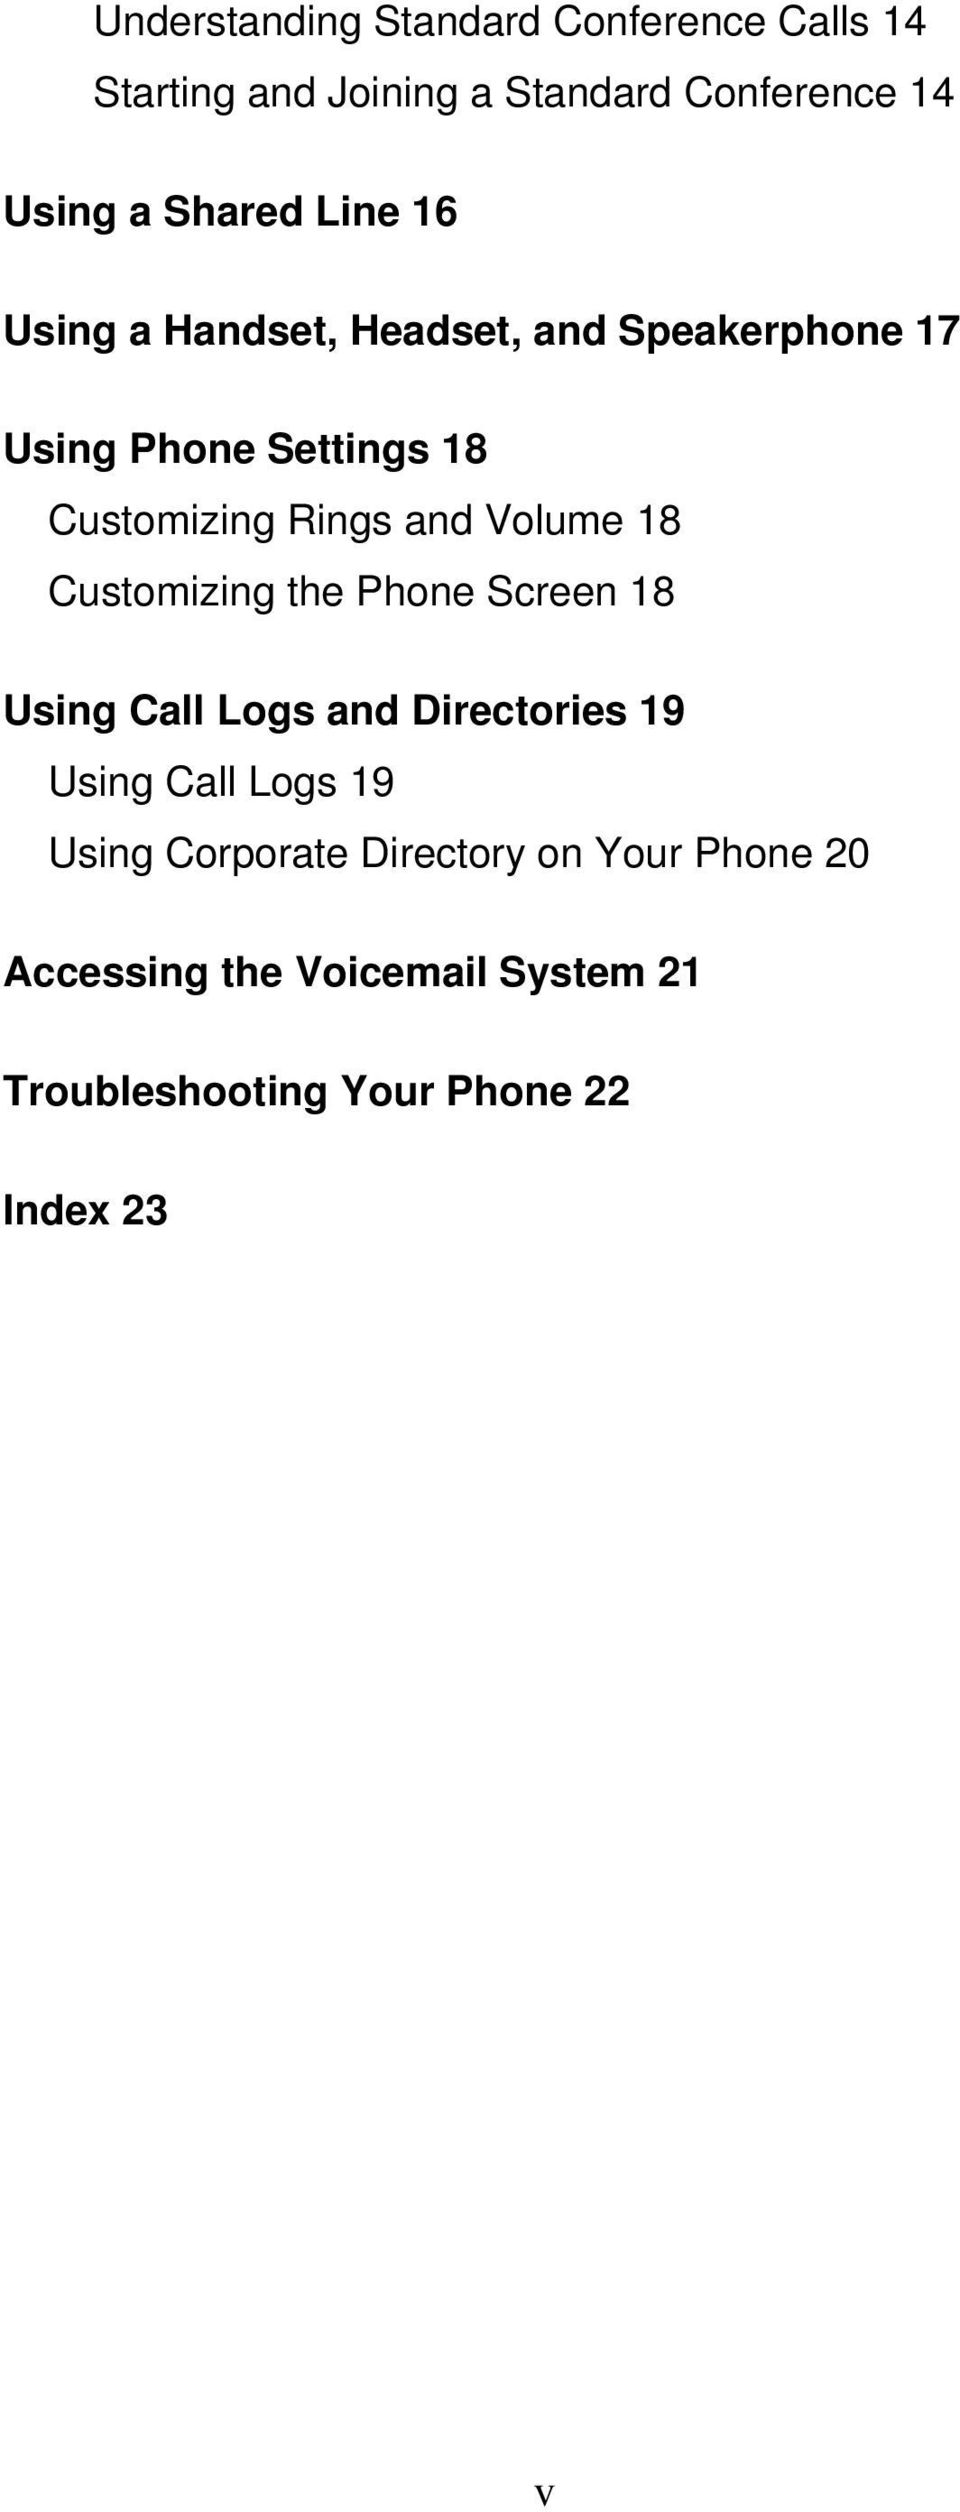 Volume 18 Customizing the Phone Screen 18 Using Call Logs and Directories 19 Using Call Logs 19 Using